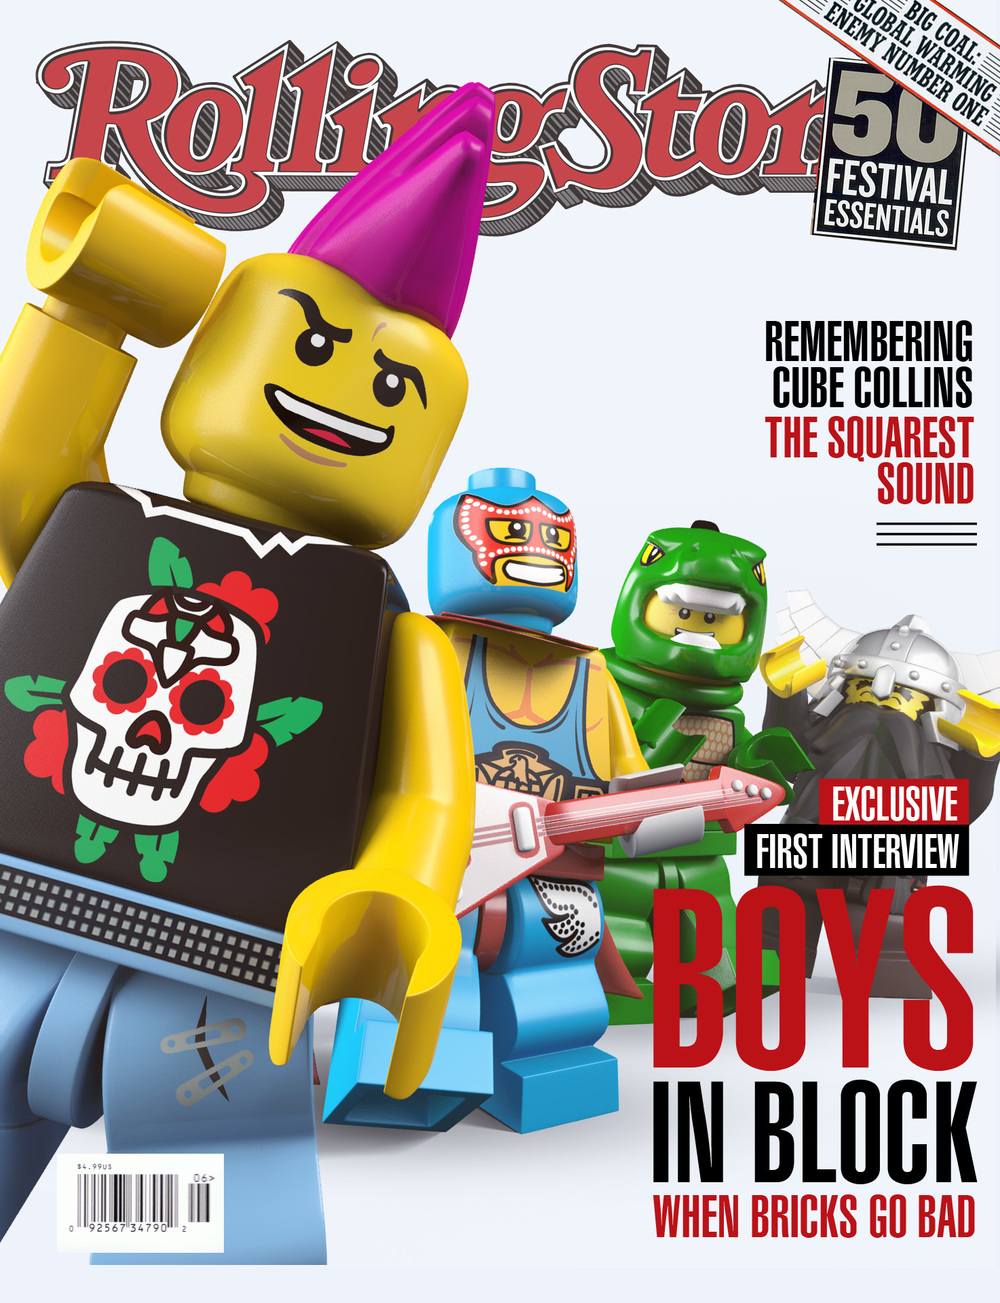 print lego peppermelon the bricks went bad boys in block invited us to produce their magazine covers and we knew exactly how to bring the rock out of them